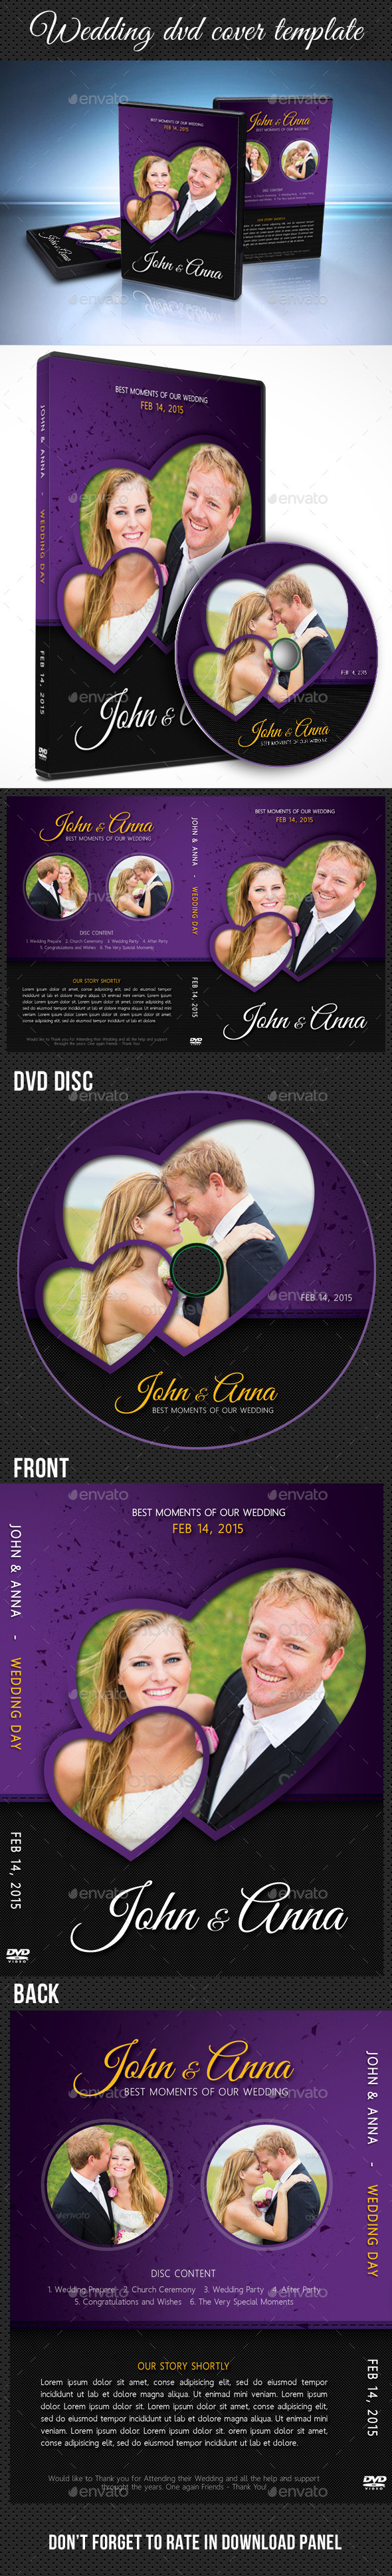 Wedding DVD Cover Template 12 - CD & DVD Artwork Print Templates